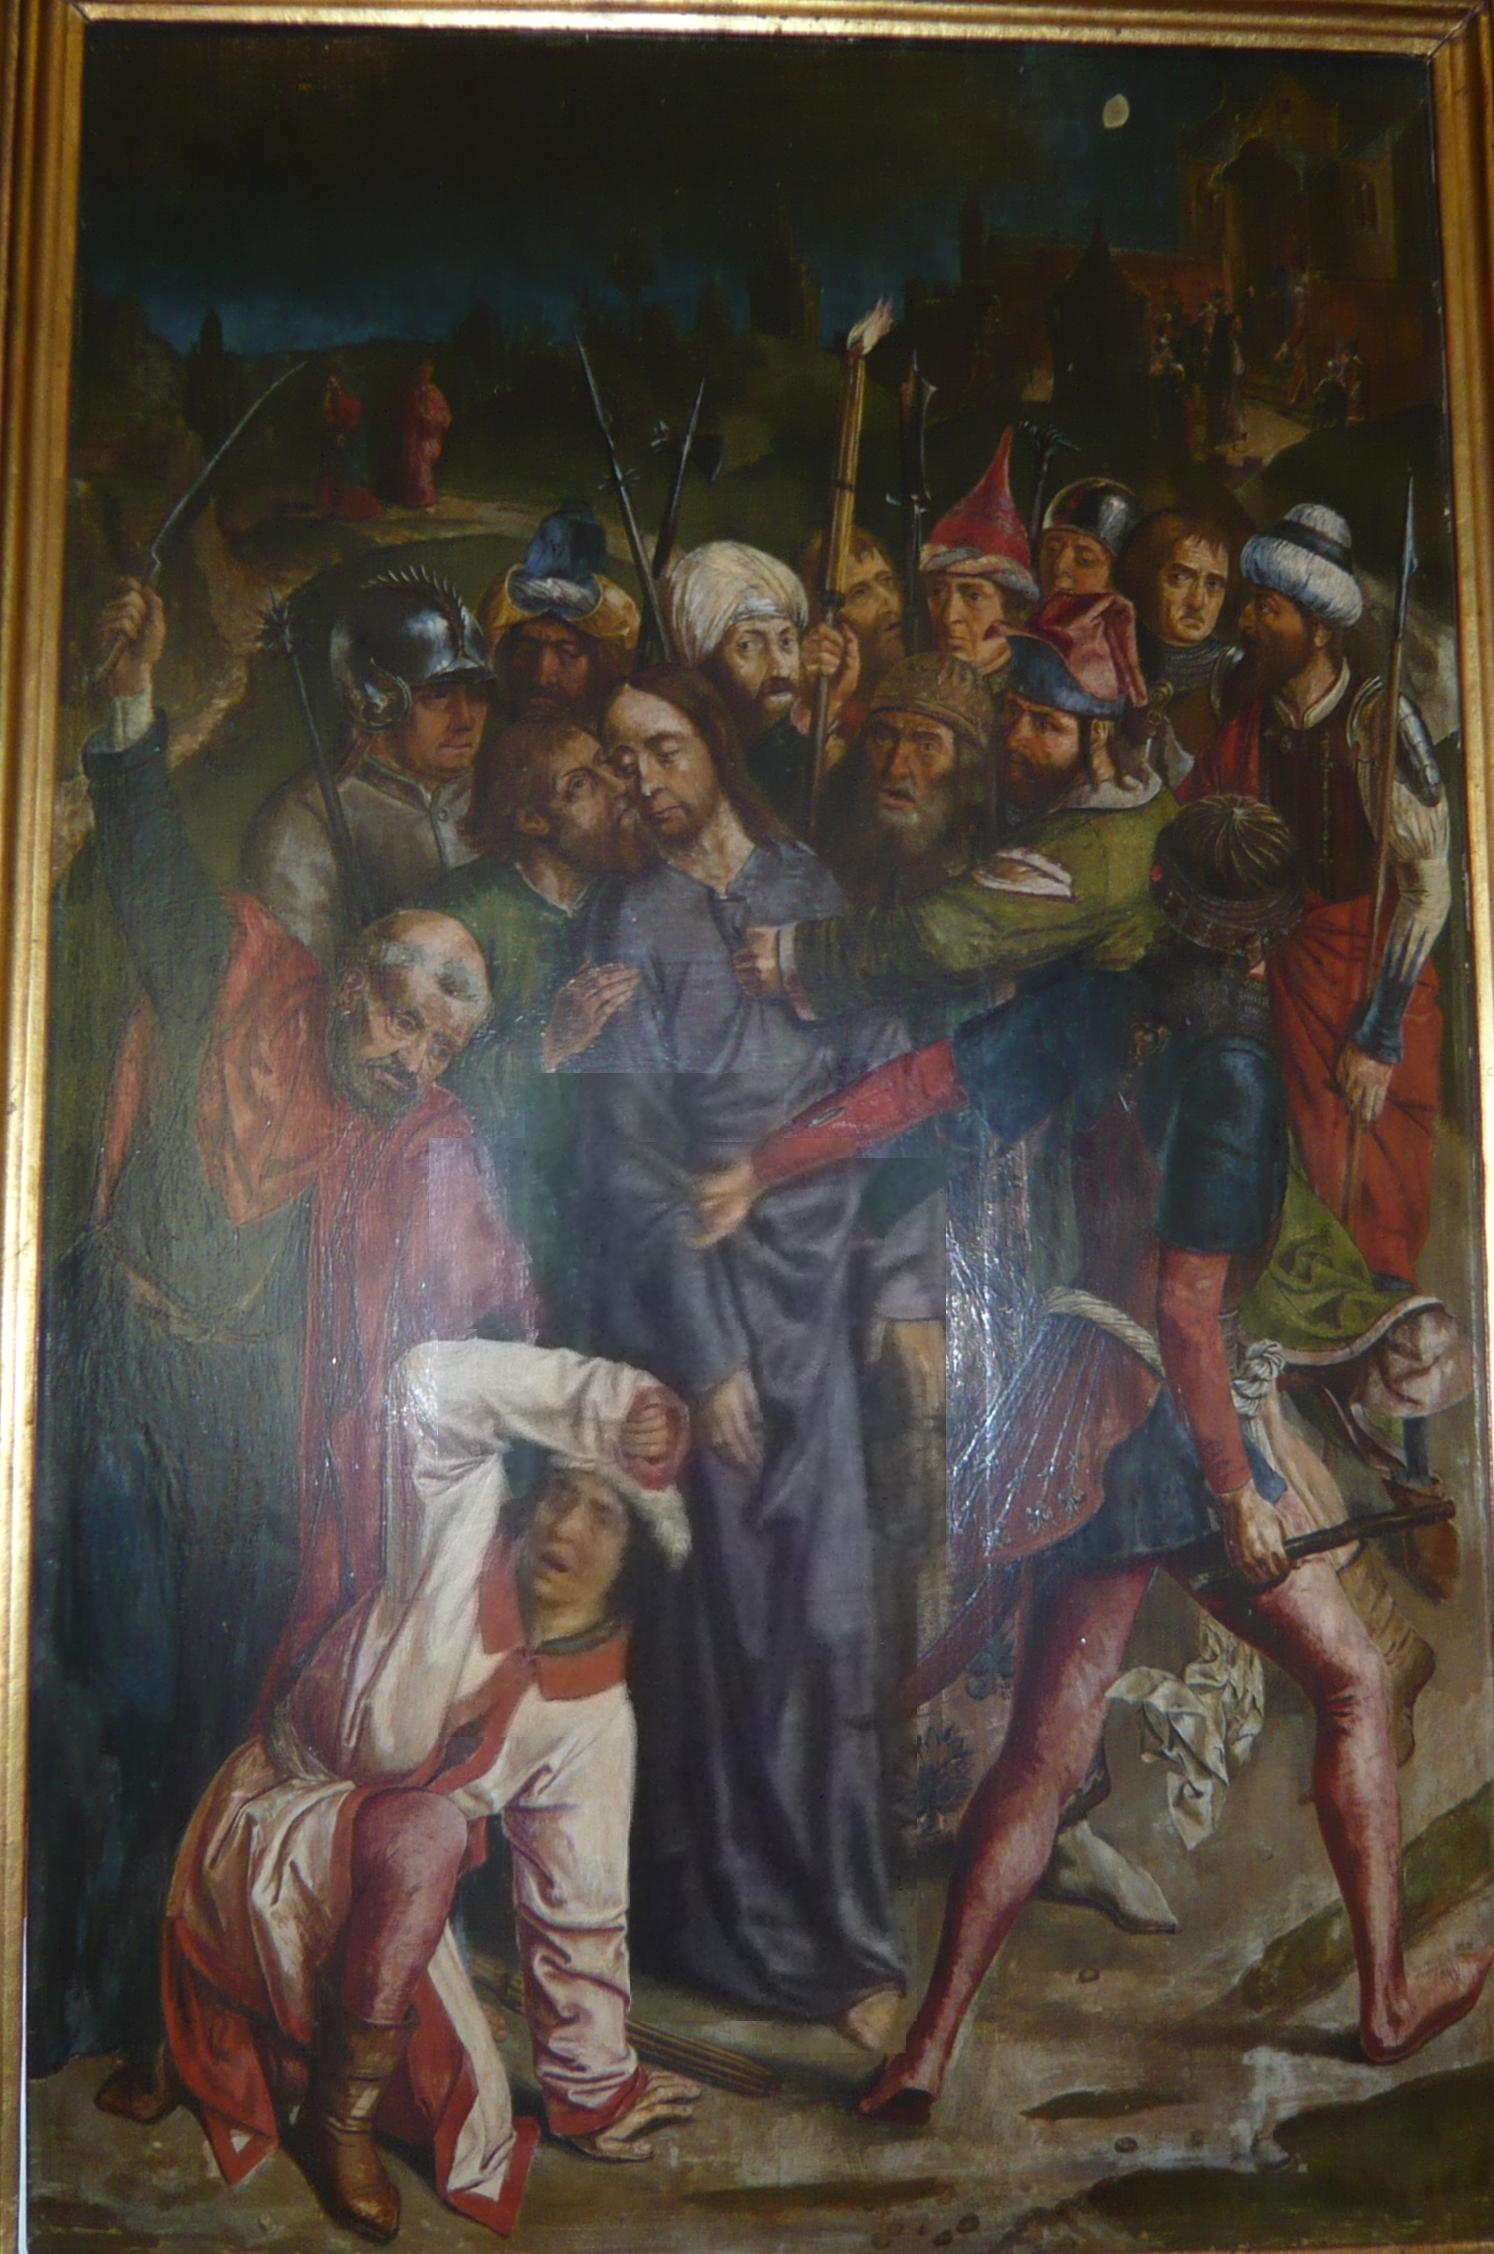 File:Follower of Dieric Bouts - Arrest of Jesus 1485-1500.jpg